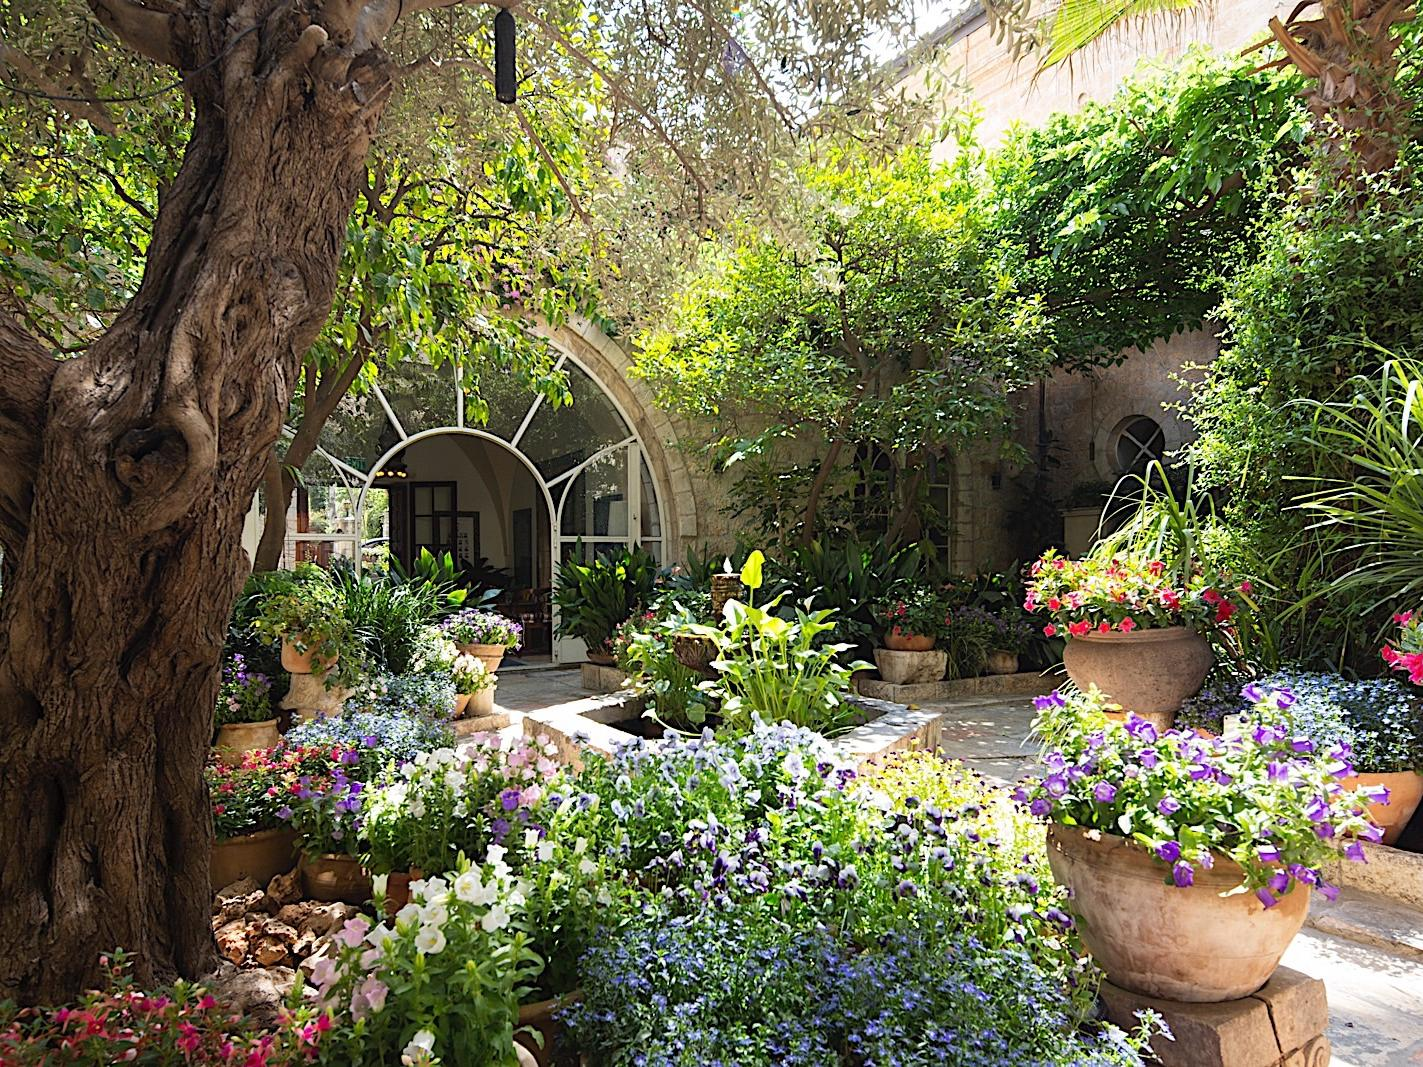 The Courtyard at The American Colony Hotel in Jerusalem